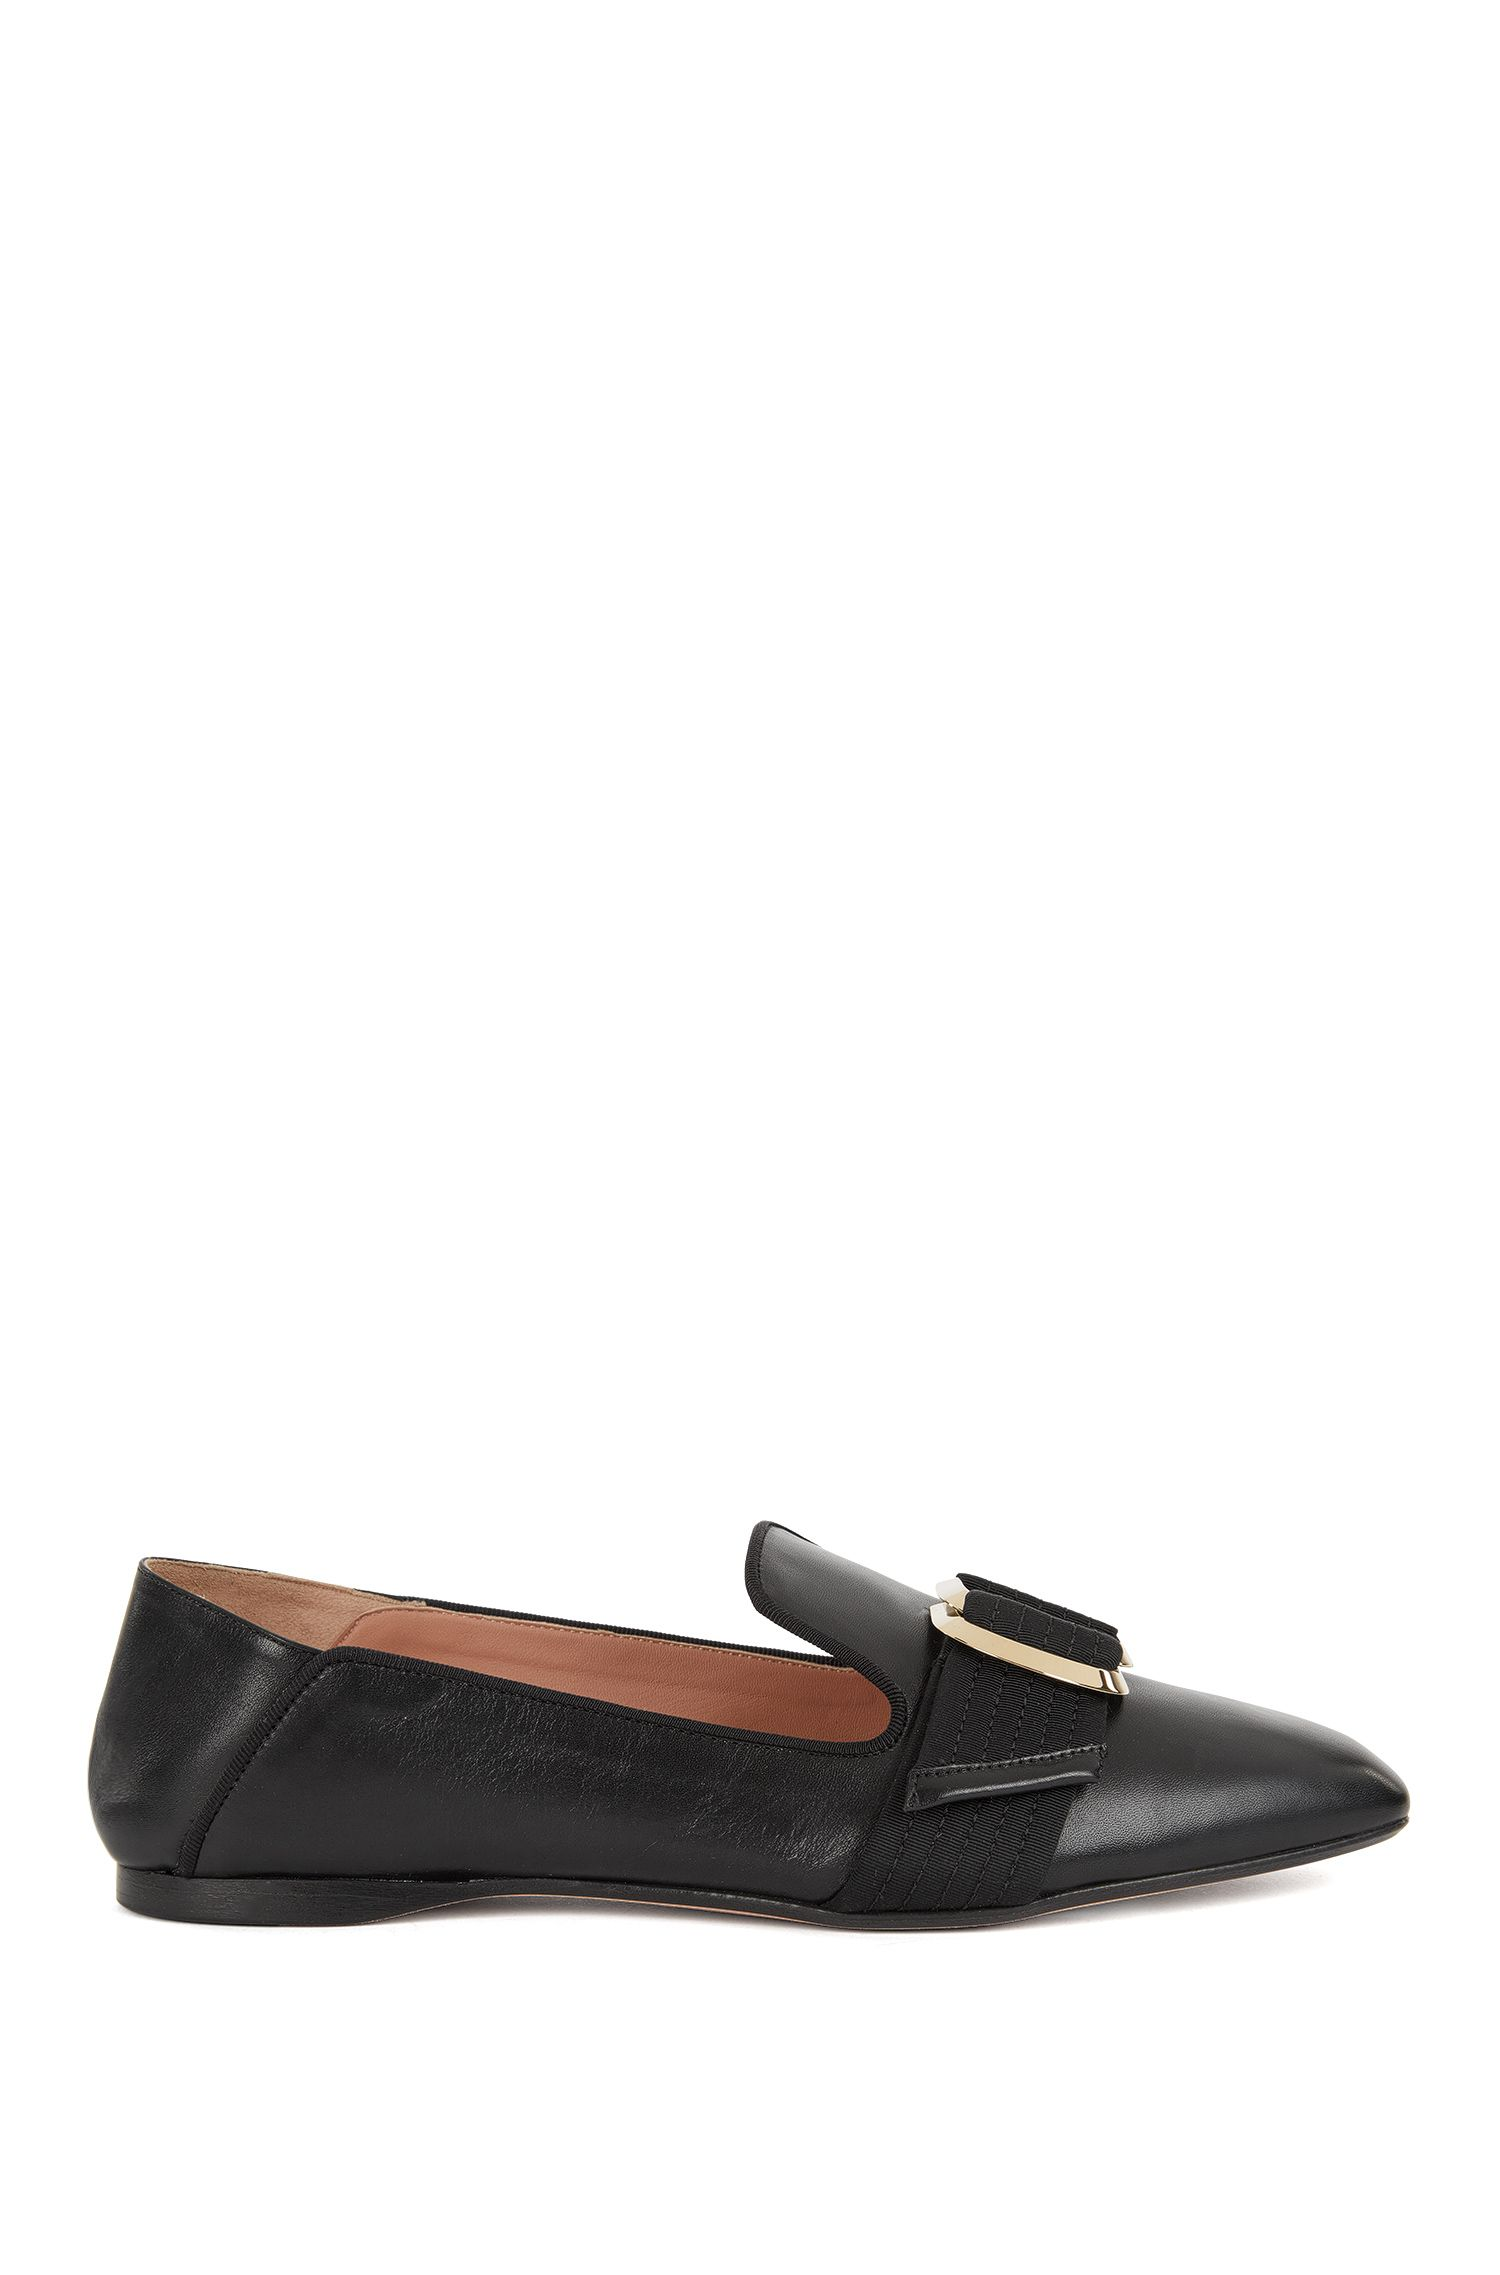 Leather loafers with double-ring trim